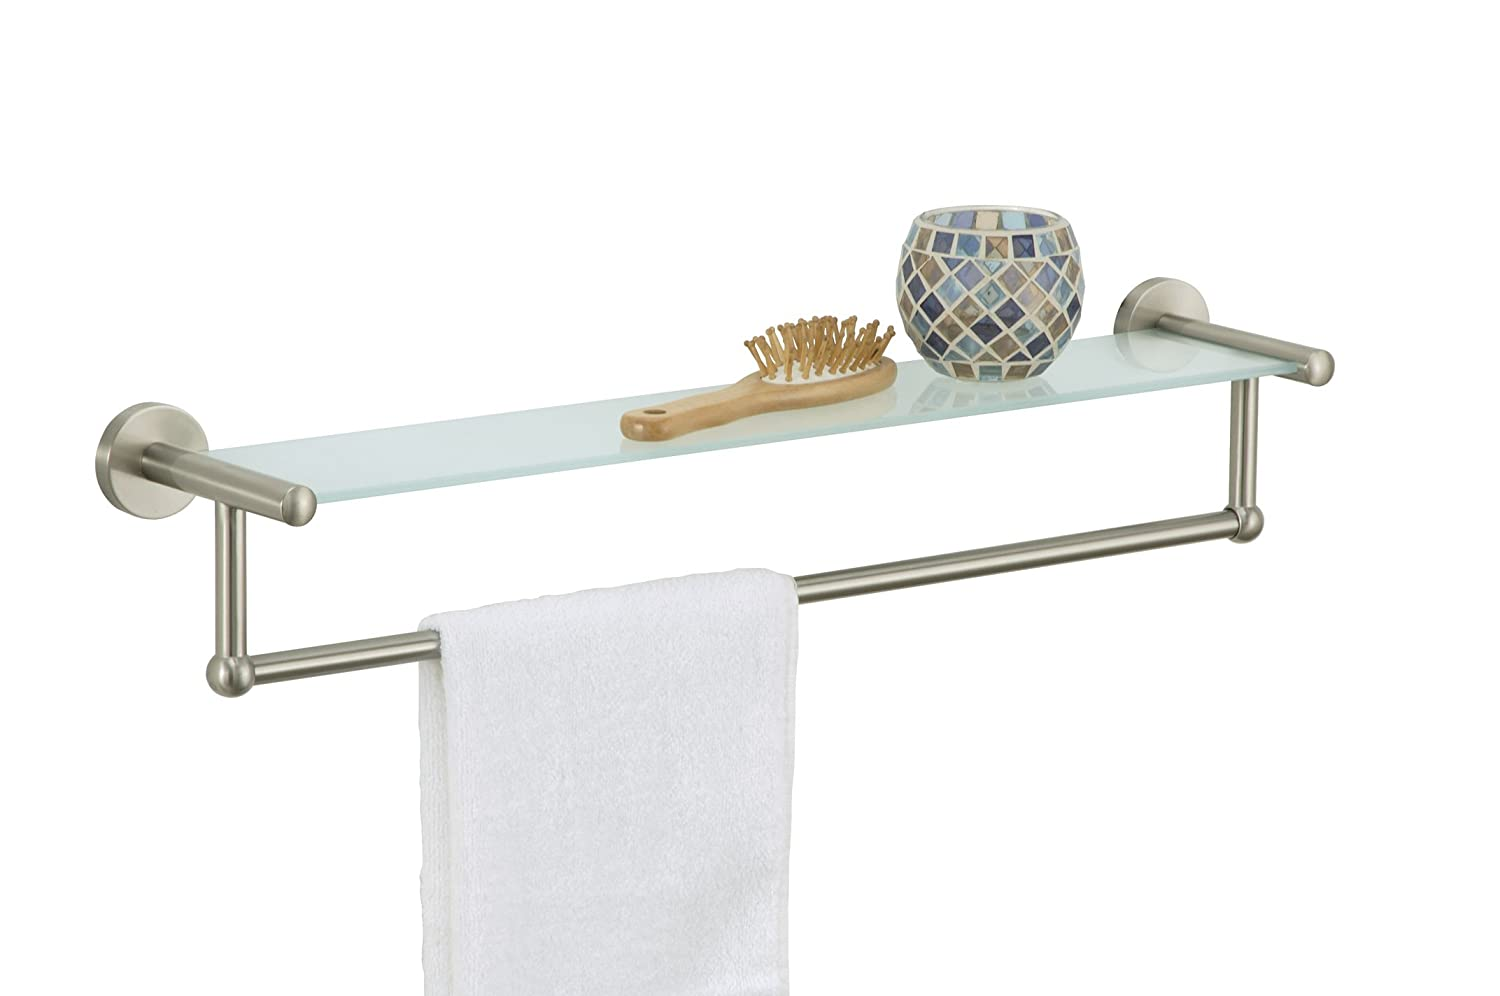 Amazon.com Organize It All Satin Nickel Glass Shelf with Towel Bar Home u0026 Kitchen  sc 1 st  Amazon.com & Amazon.com: Organize It All Satin Nickel Glass Shelf with Towel Bar ...